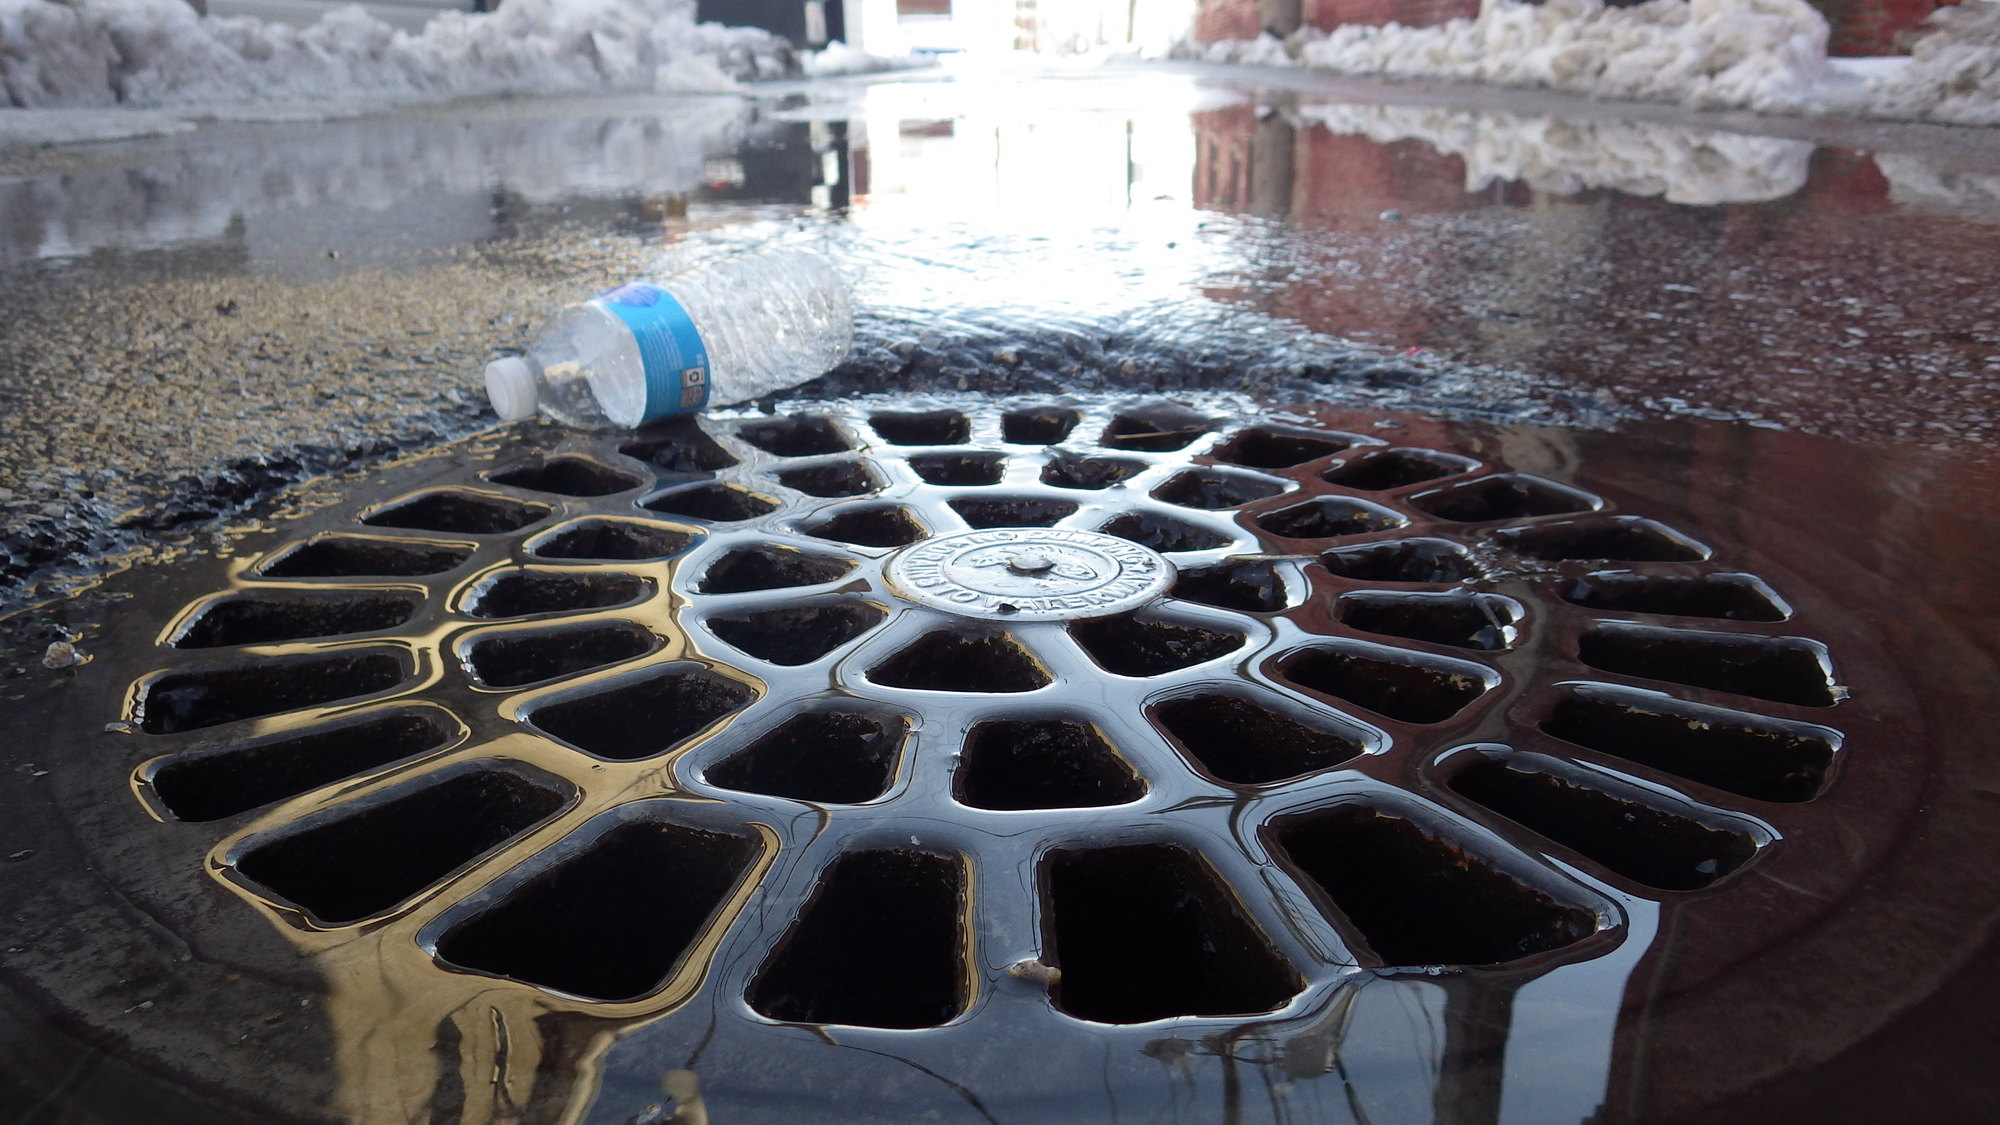 Stormwater runoff from snomelt running into a storm drain.